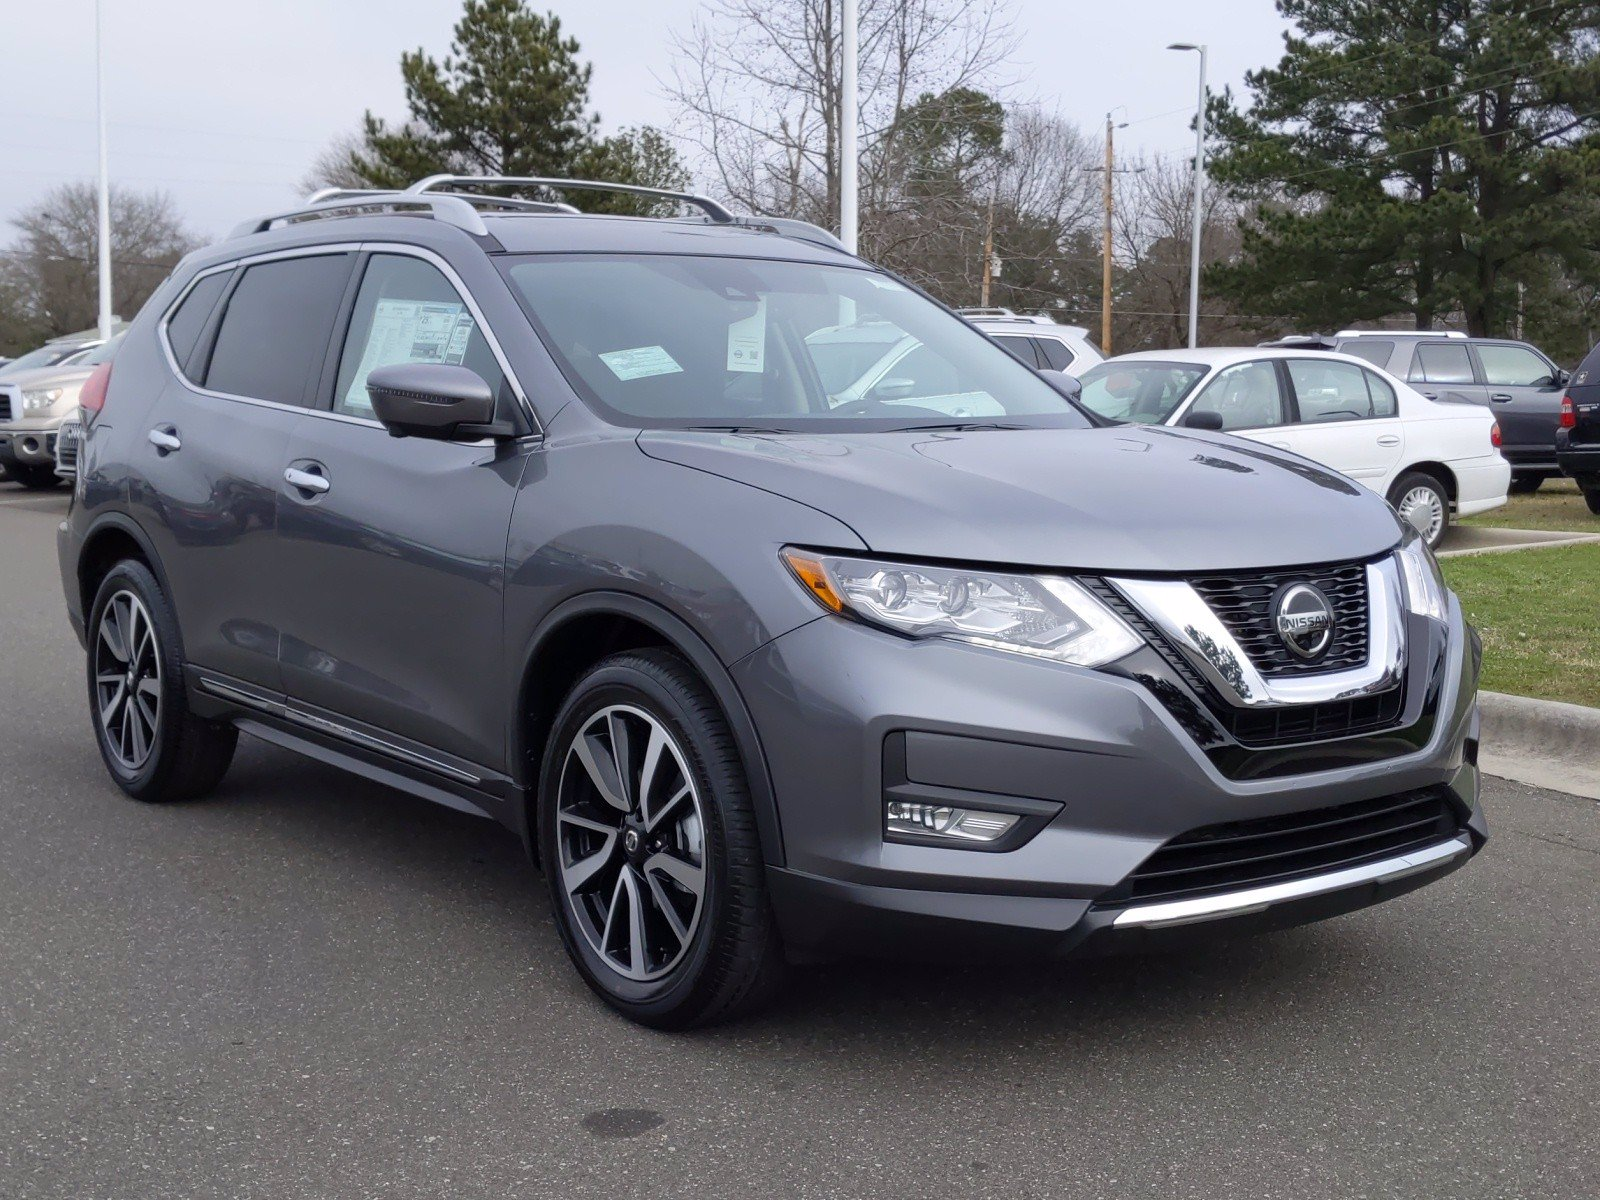 New 2020 Nissan Rogue SL With Navigation